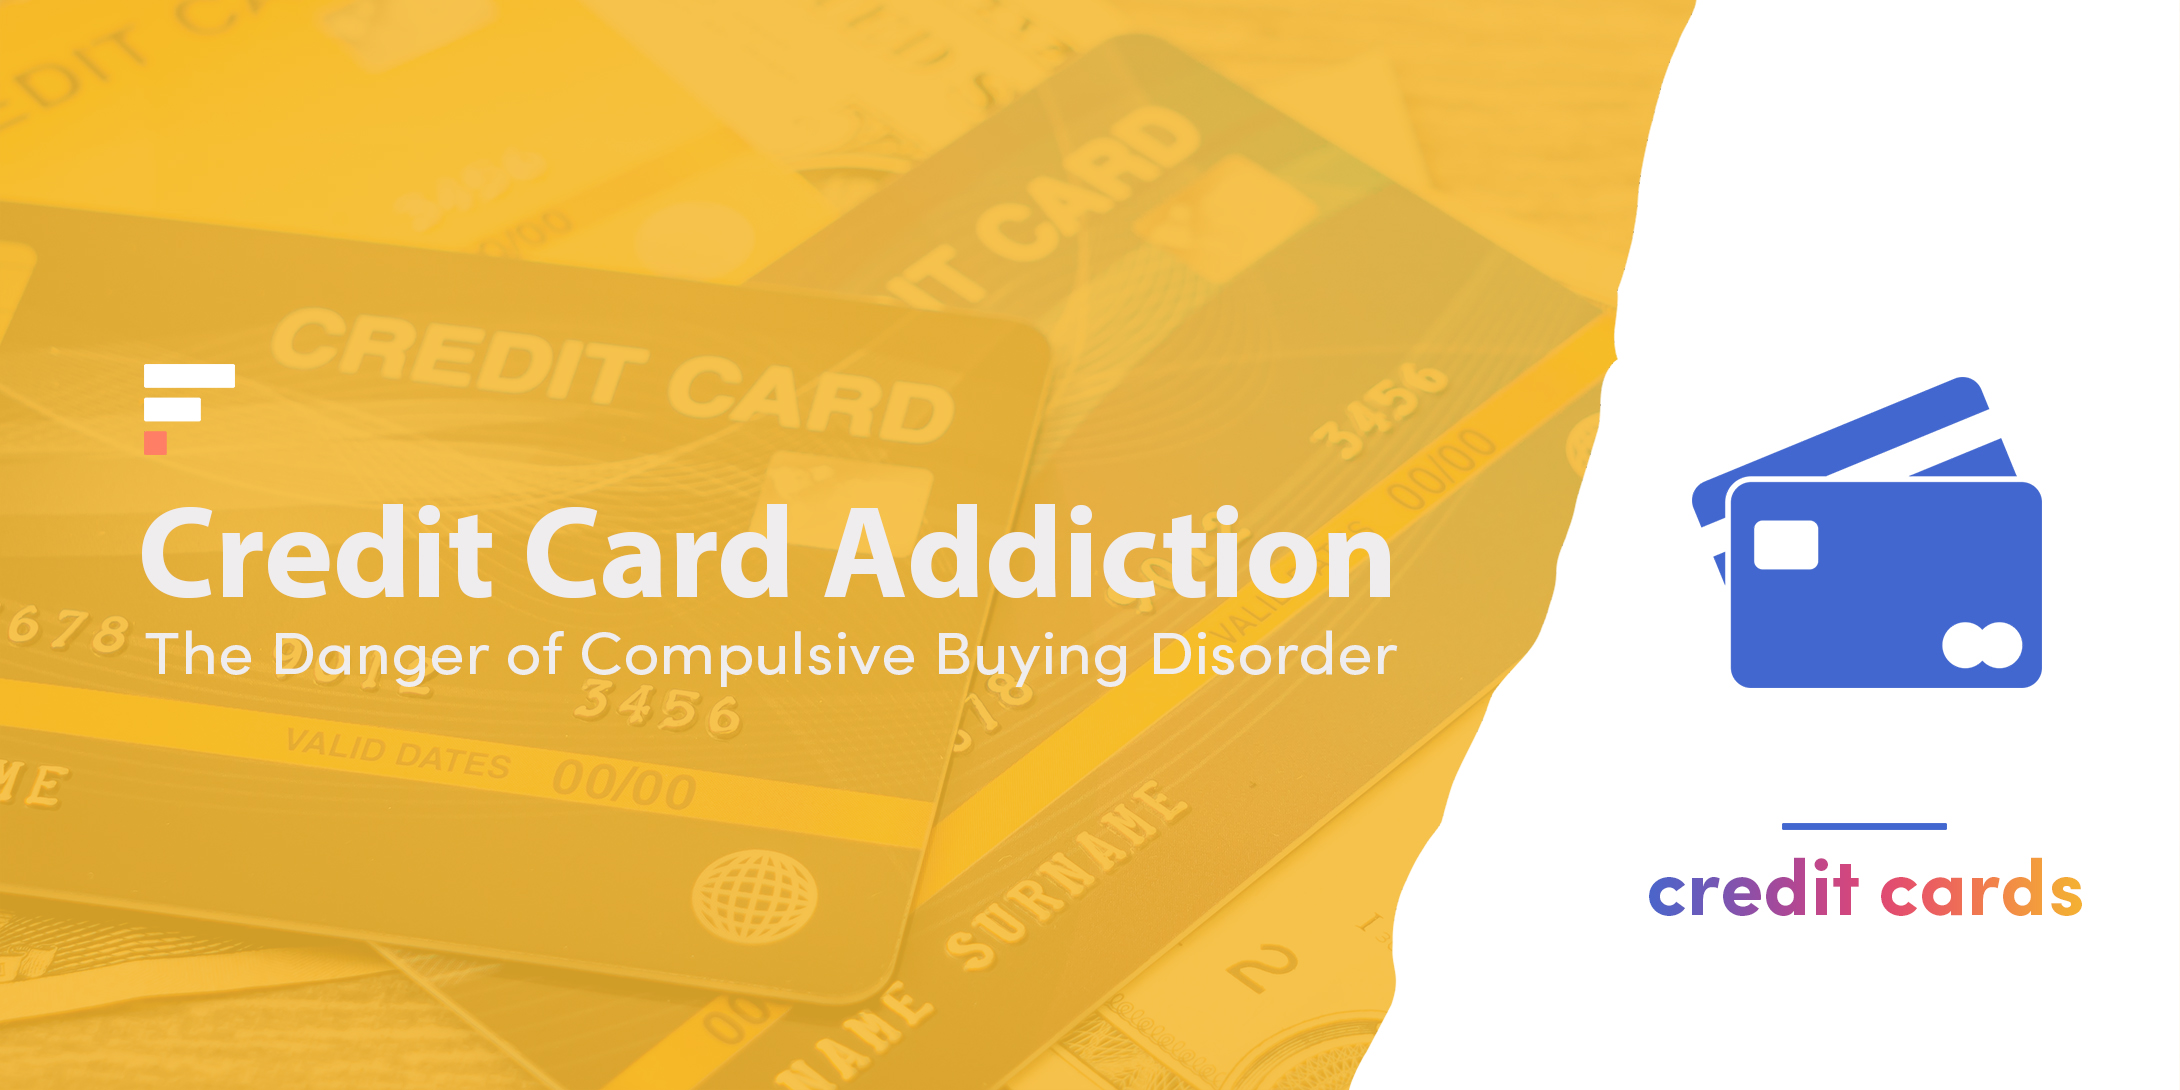 Credit Card Addiction: The Danger of Compulsive Buying Disorder